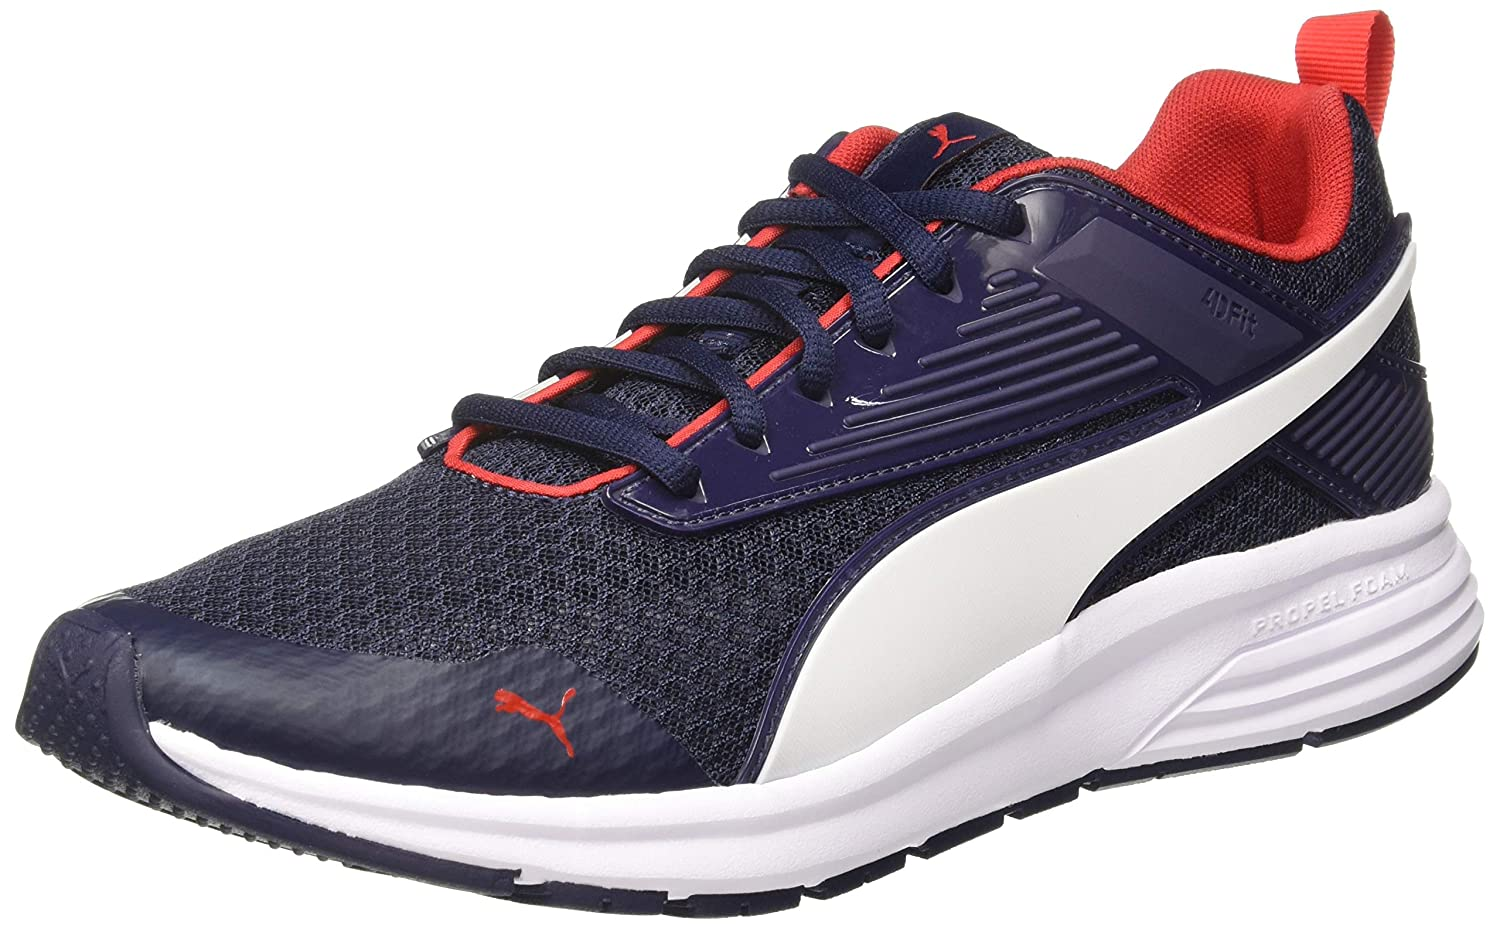 Pure Jogger Pro Running Shoes